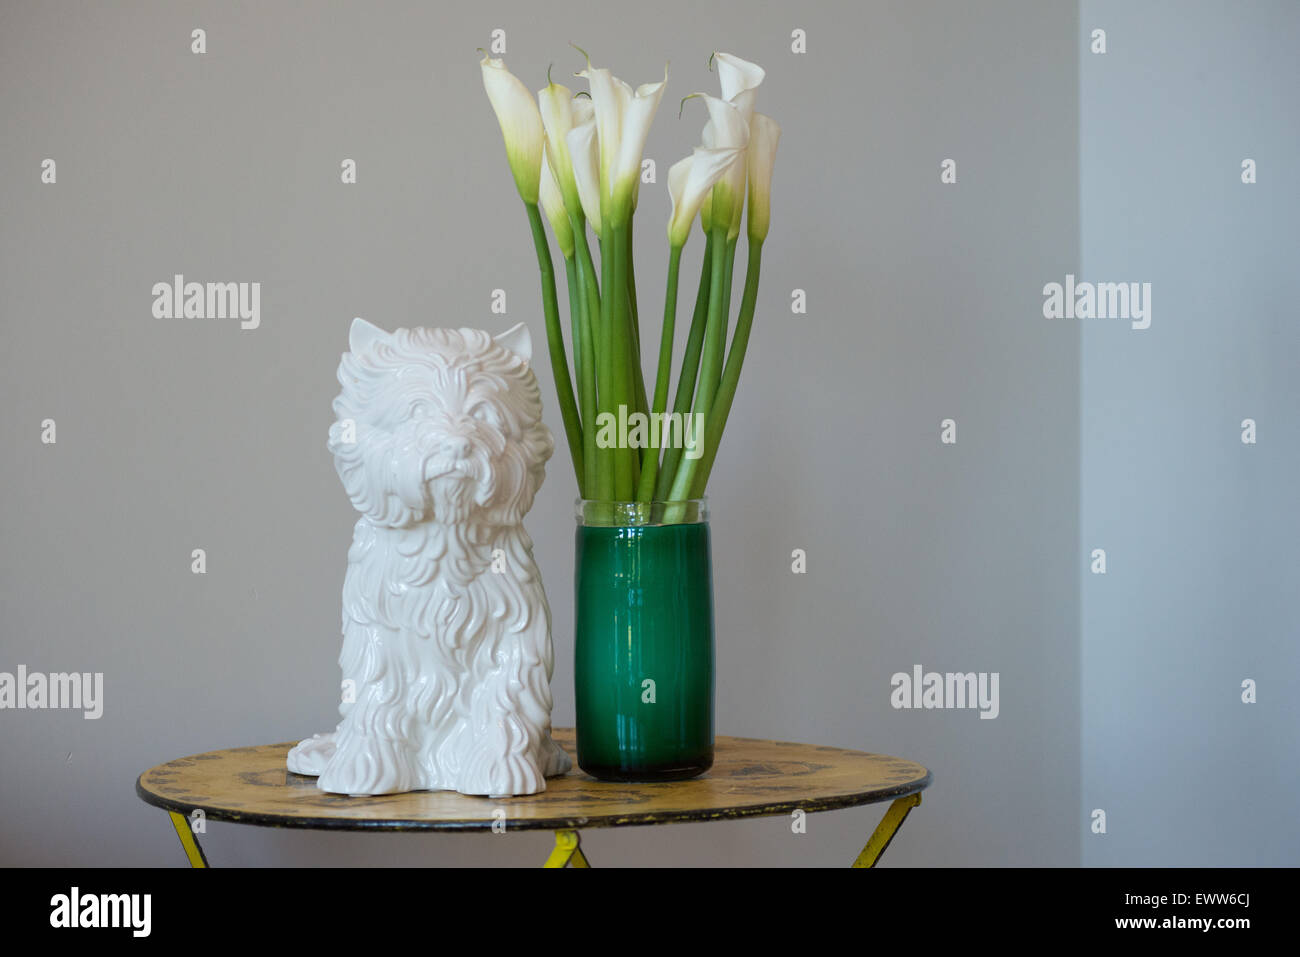 White Porcelain Cat Calla Lily Flower Vase Table Stock Photo